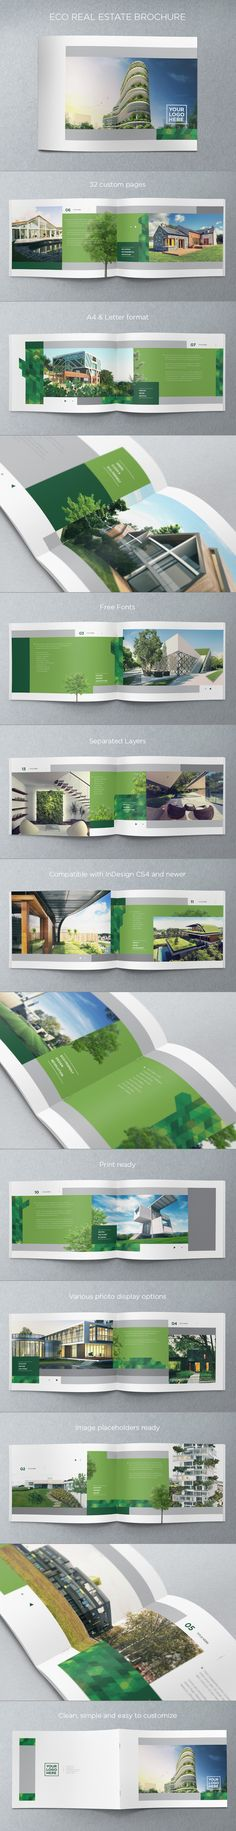 Eco Real Estate Brochure. Download here: http://graphicriver.net/item/eco-real-estate-brochure/4718641?ref=abradesign #design #brochure